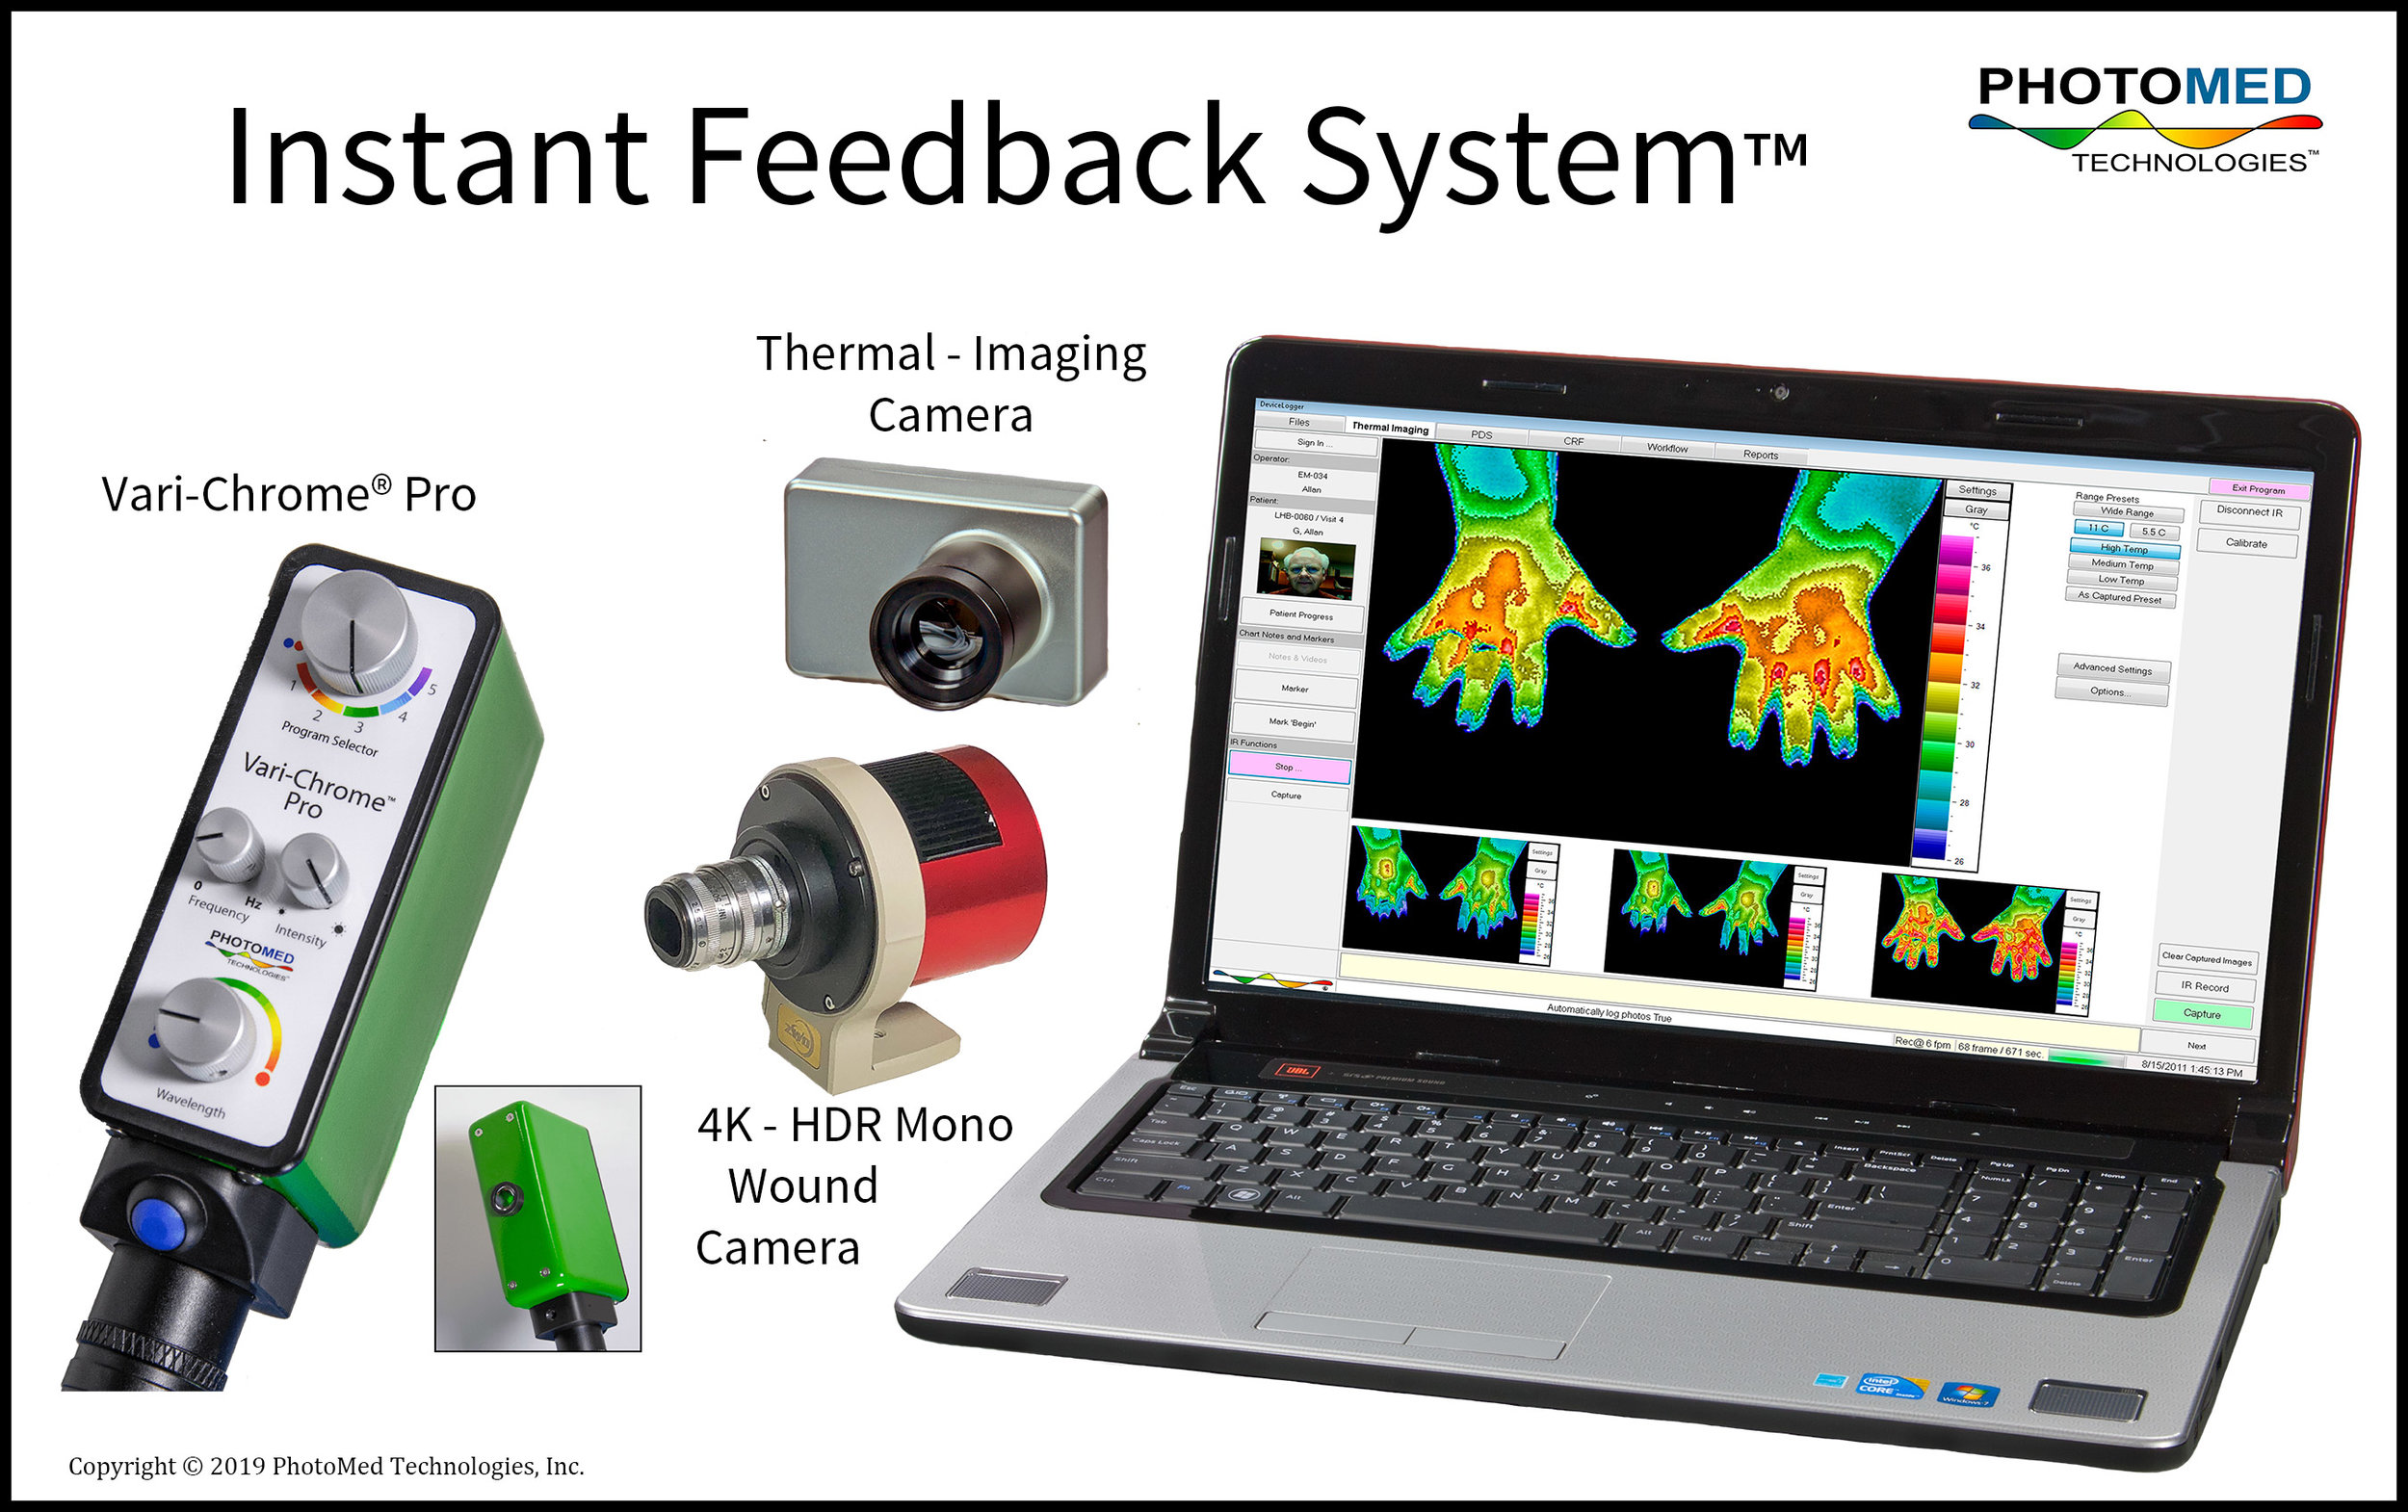 Figure 1  - The  Instant Feedback System ™ enables a solo practitioner to manage visits which include real-time recording of treatment parameters, physiological responses, and outcomes. The modular System is designed to manage studies in small clinics or in the field. Thermal imaging provides feedback from disorders that include signs of abnormal thermoregulation. The 4k - HDR mono camera records the entrance of fresh materials entering non-healing wounds. Use a USB camera (not shown) for capturing discoveries and for documenting sensory or motor testing.